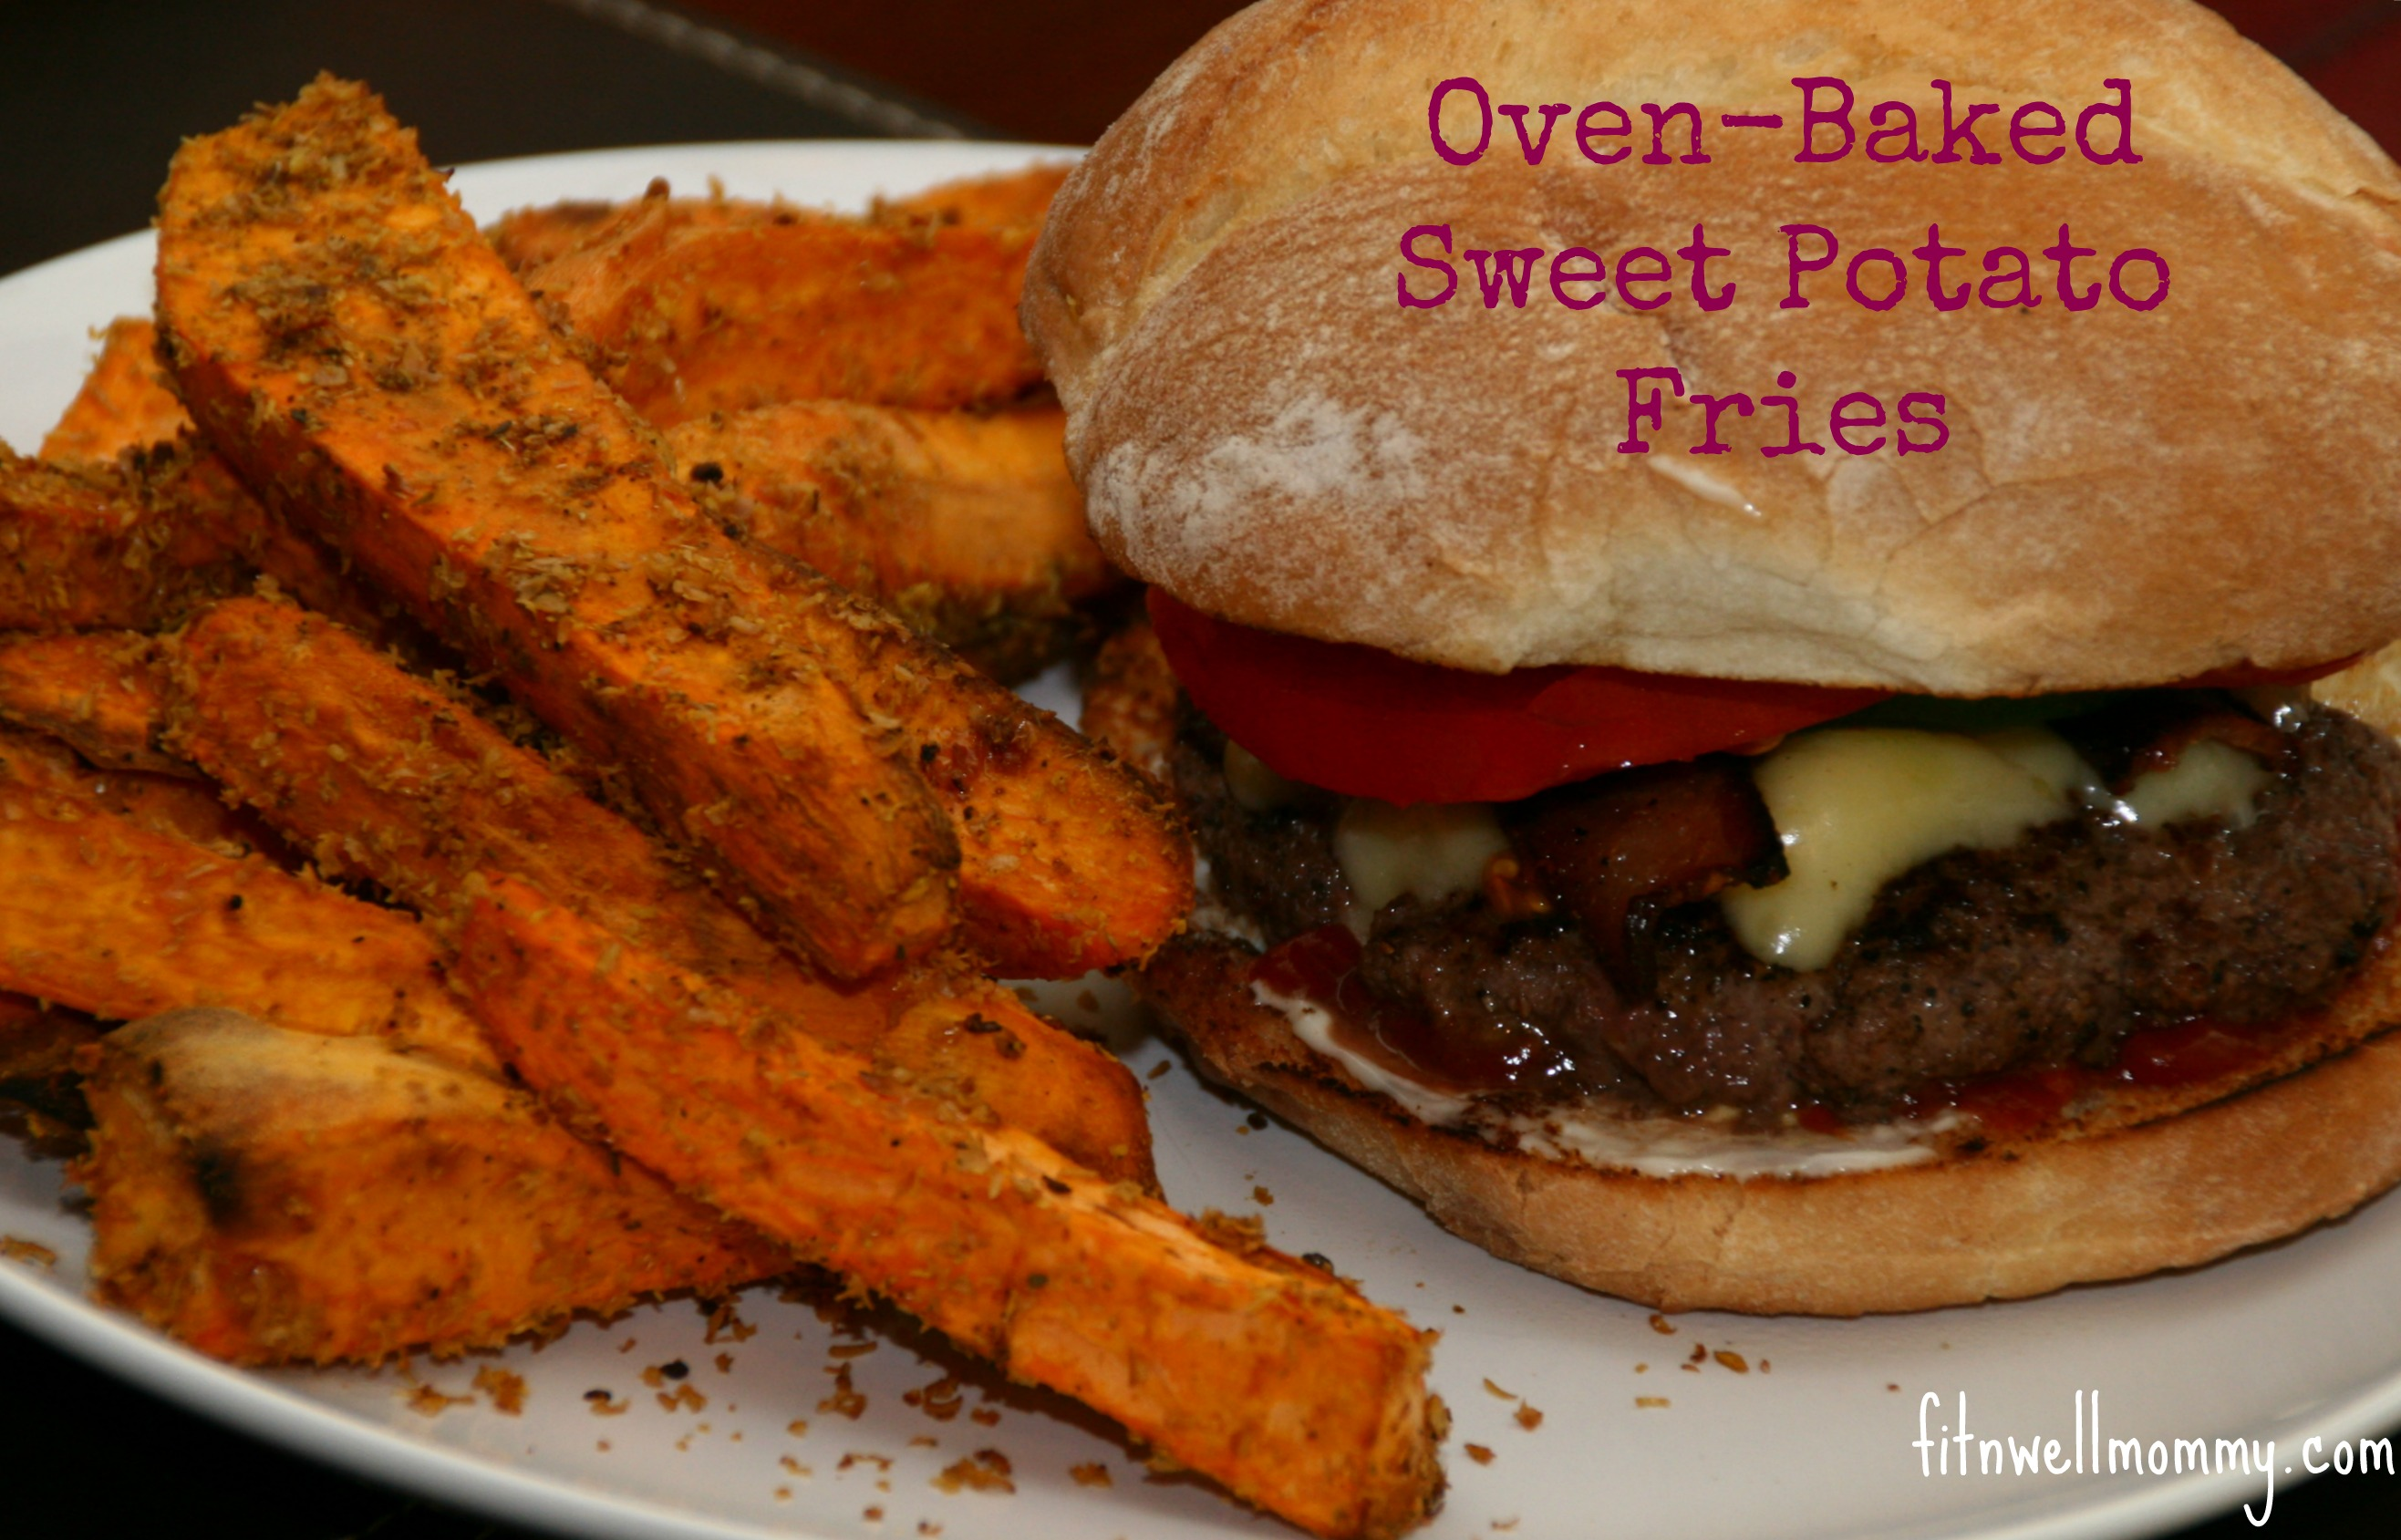 Marvelous Oven-Baked Sweet Potato Fries - Deliciously Fit